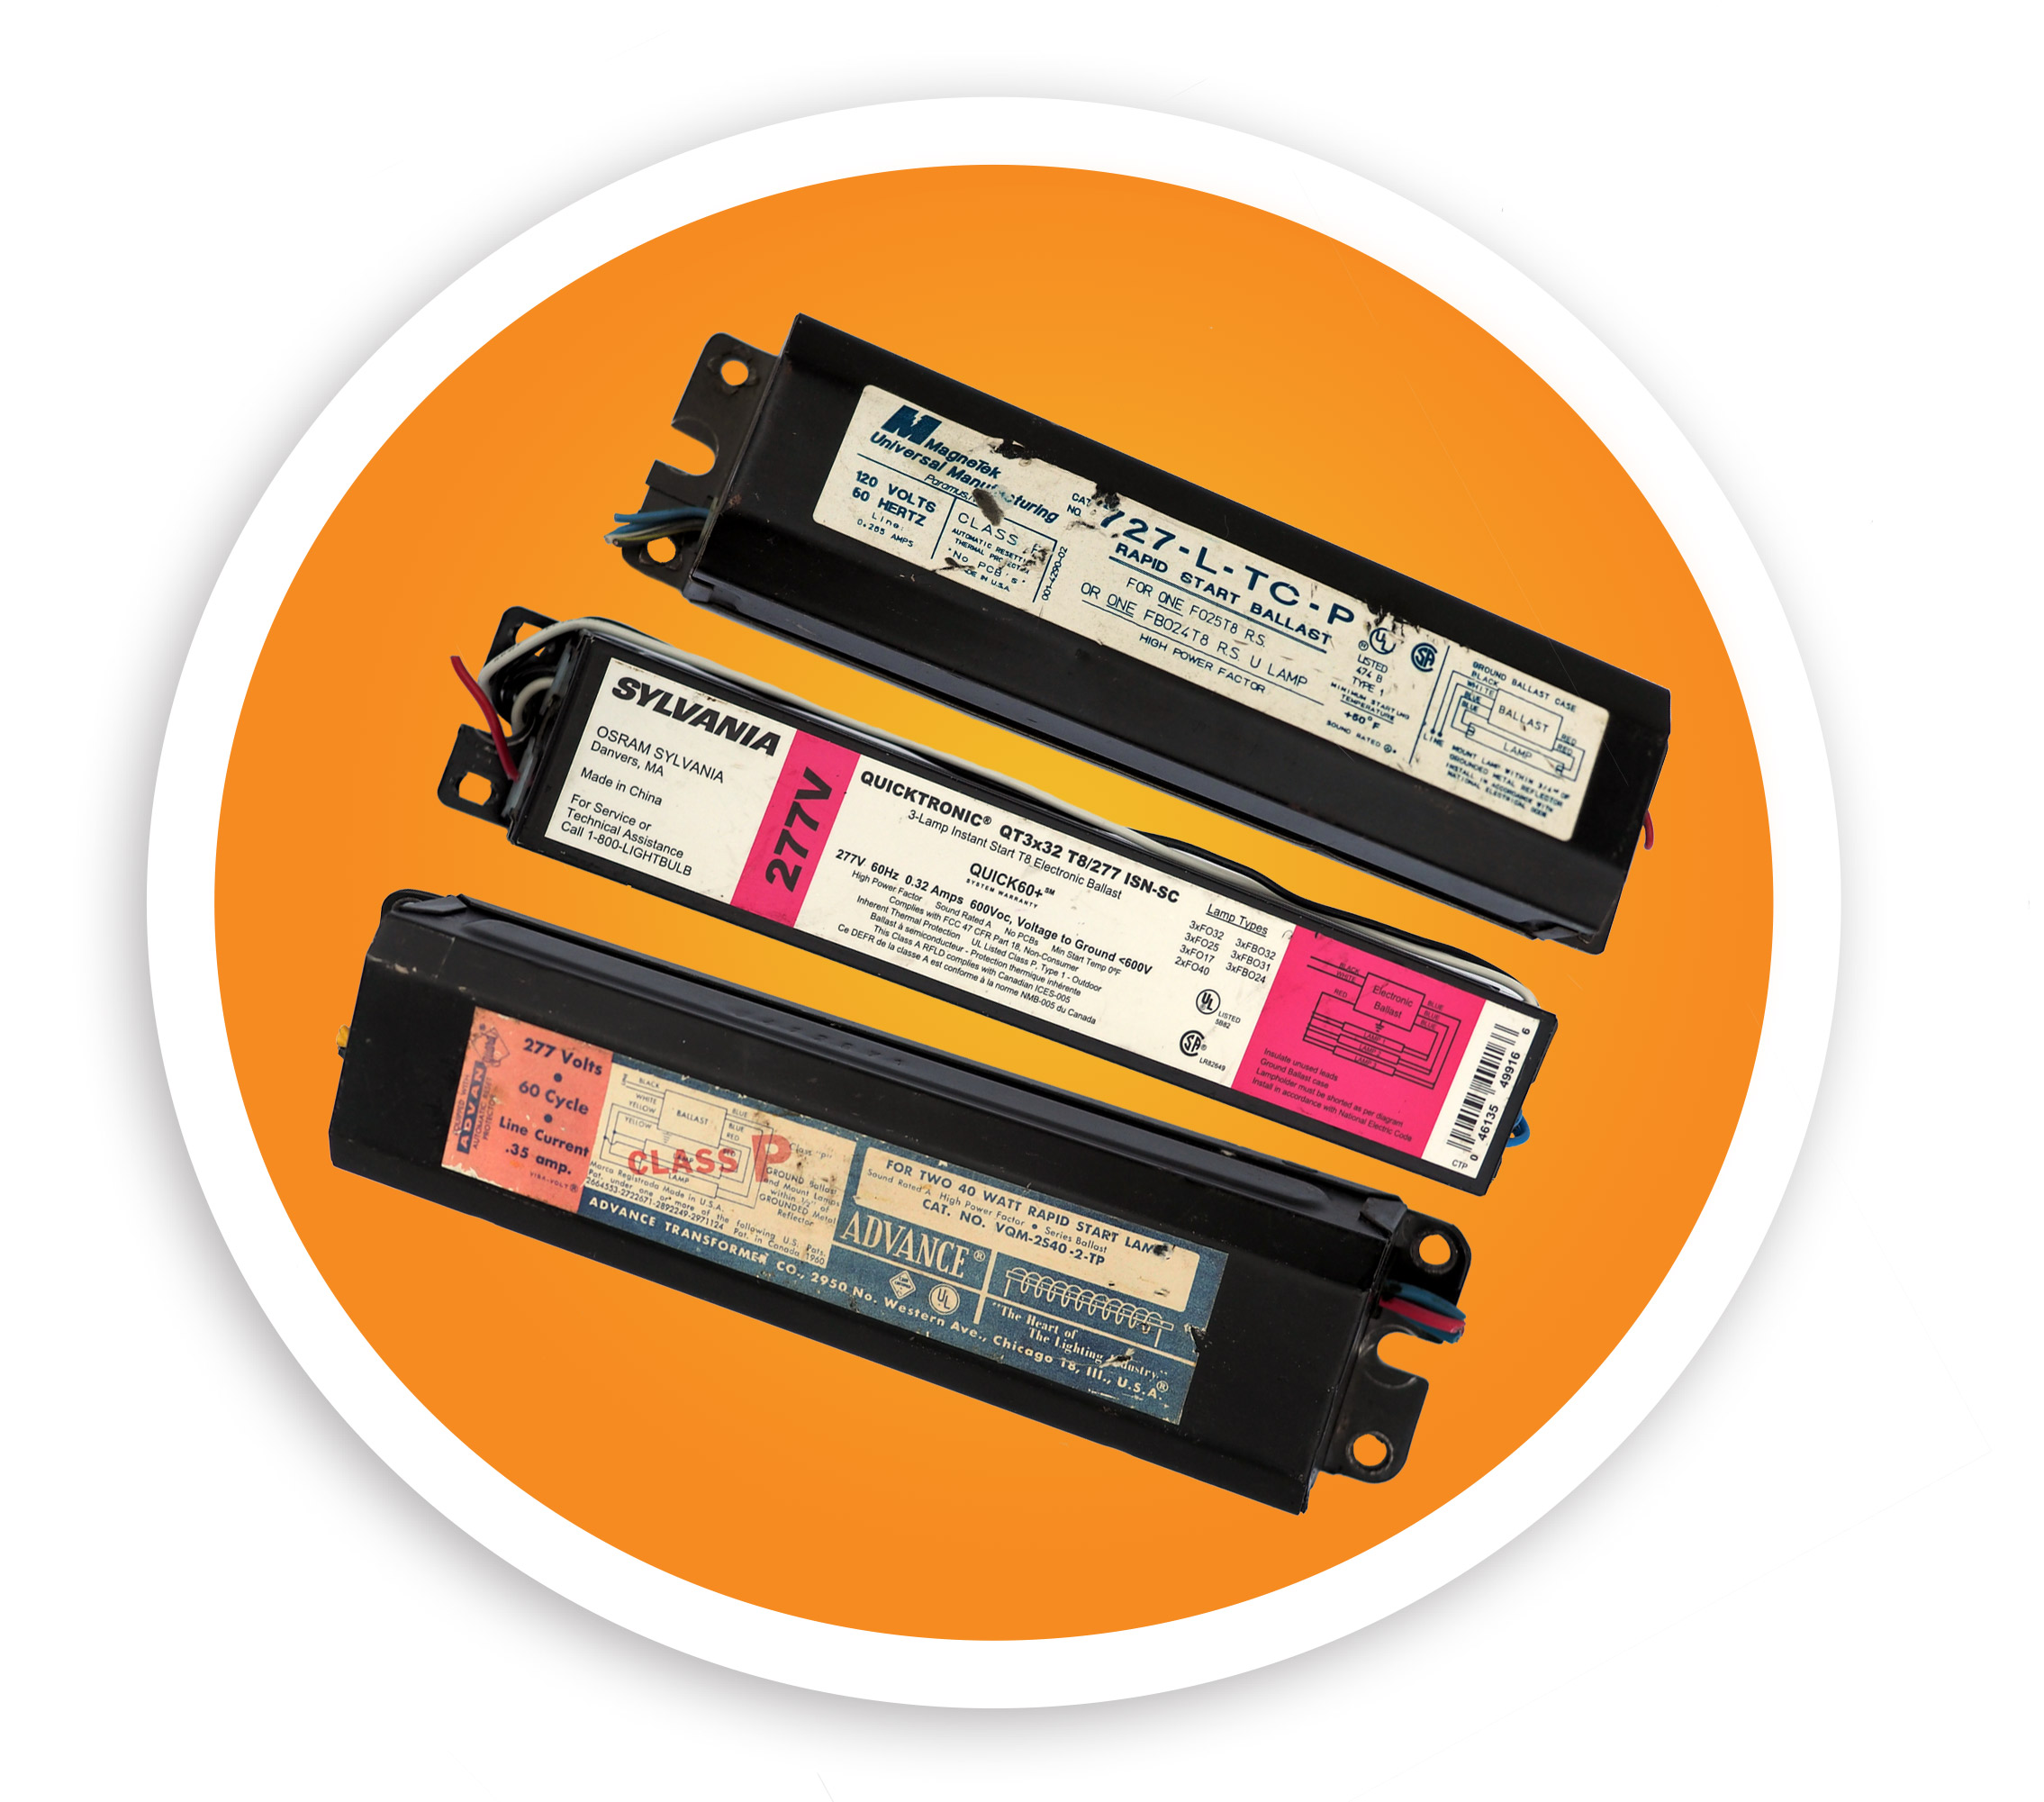 A picture of pcb, non-pcb, and electronic ballasts. NLR accepts both pcb and non-pcb ballasts.